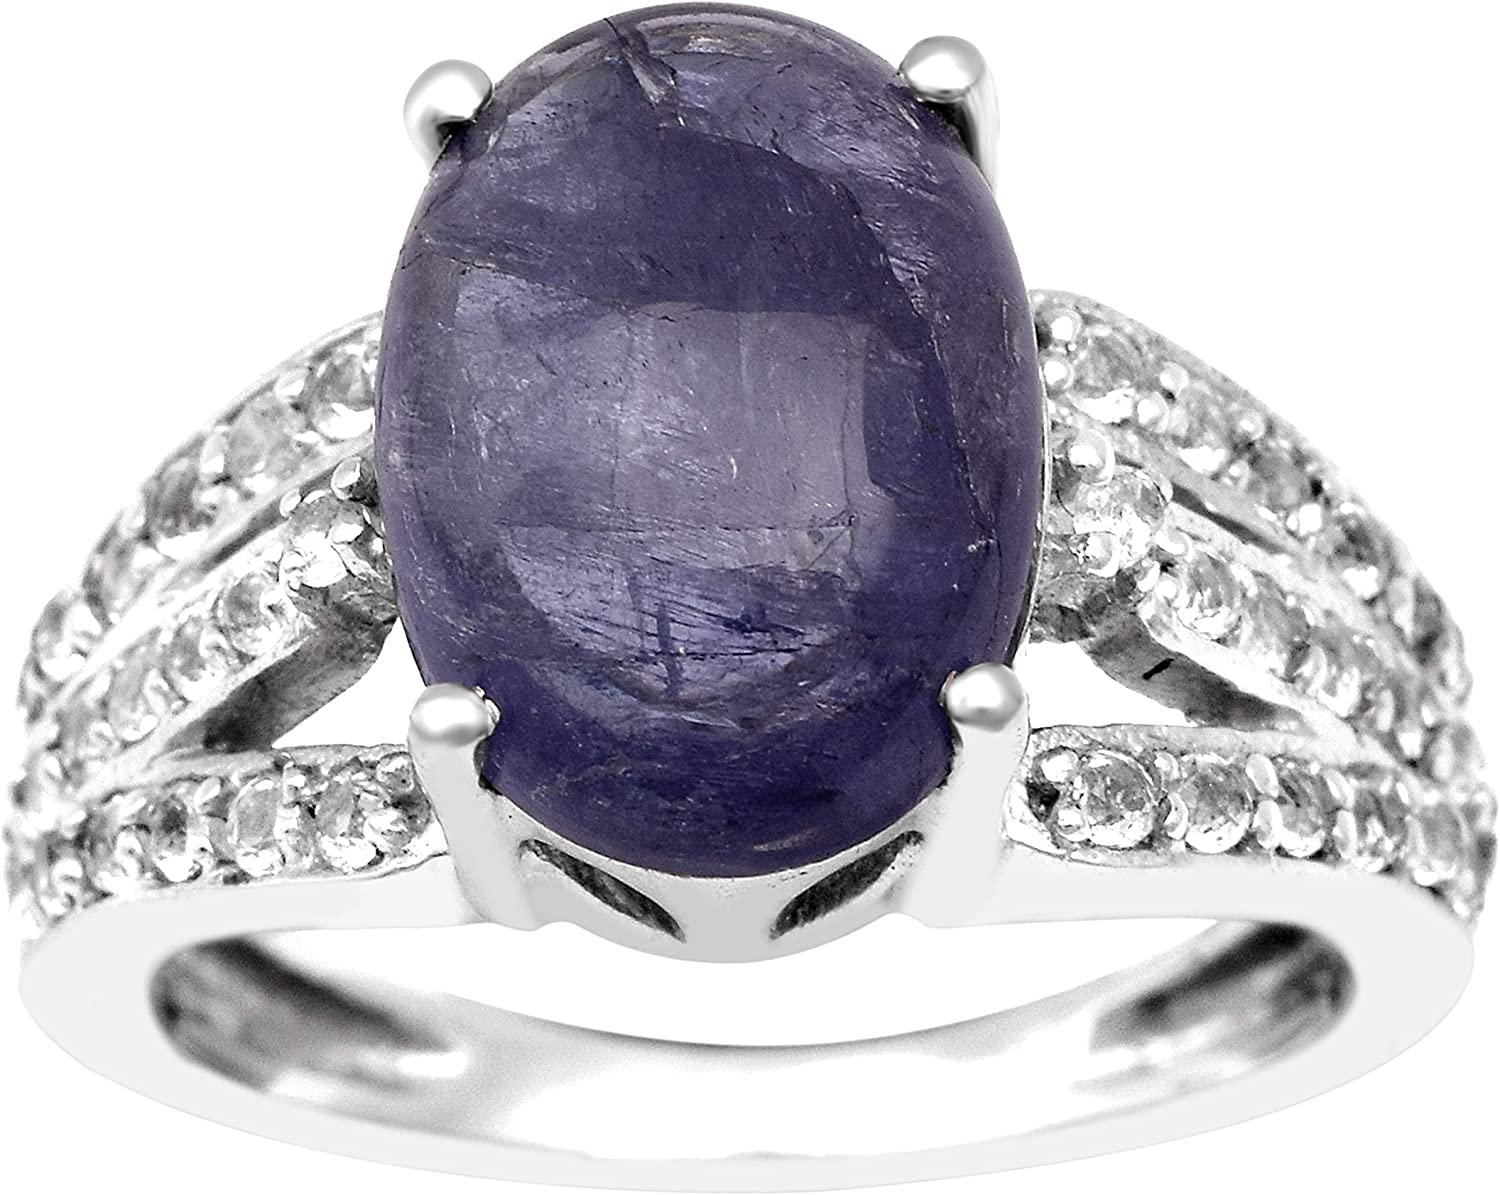 Diamond Gem Stone Ring Sterling Silver 92.5/% Ring Rhodium Polished Hand Made Ring FREE SHIPPING